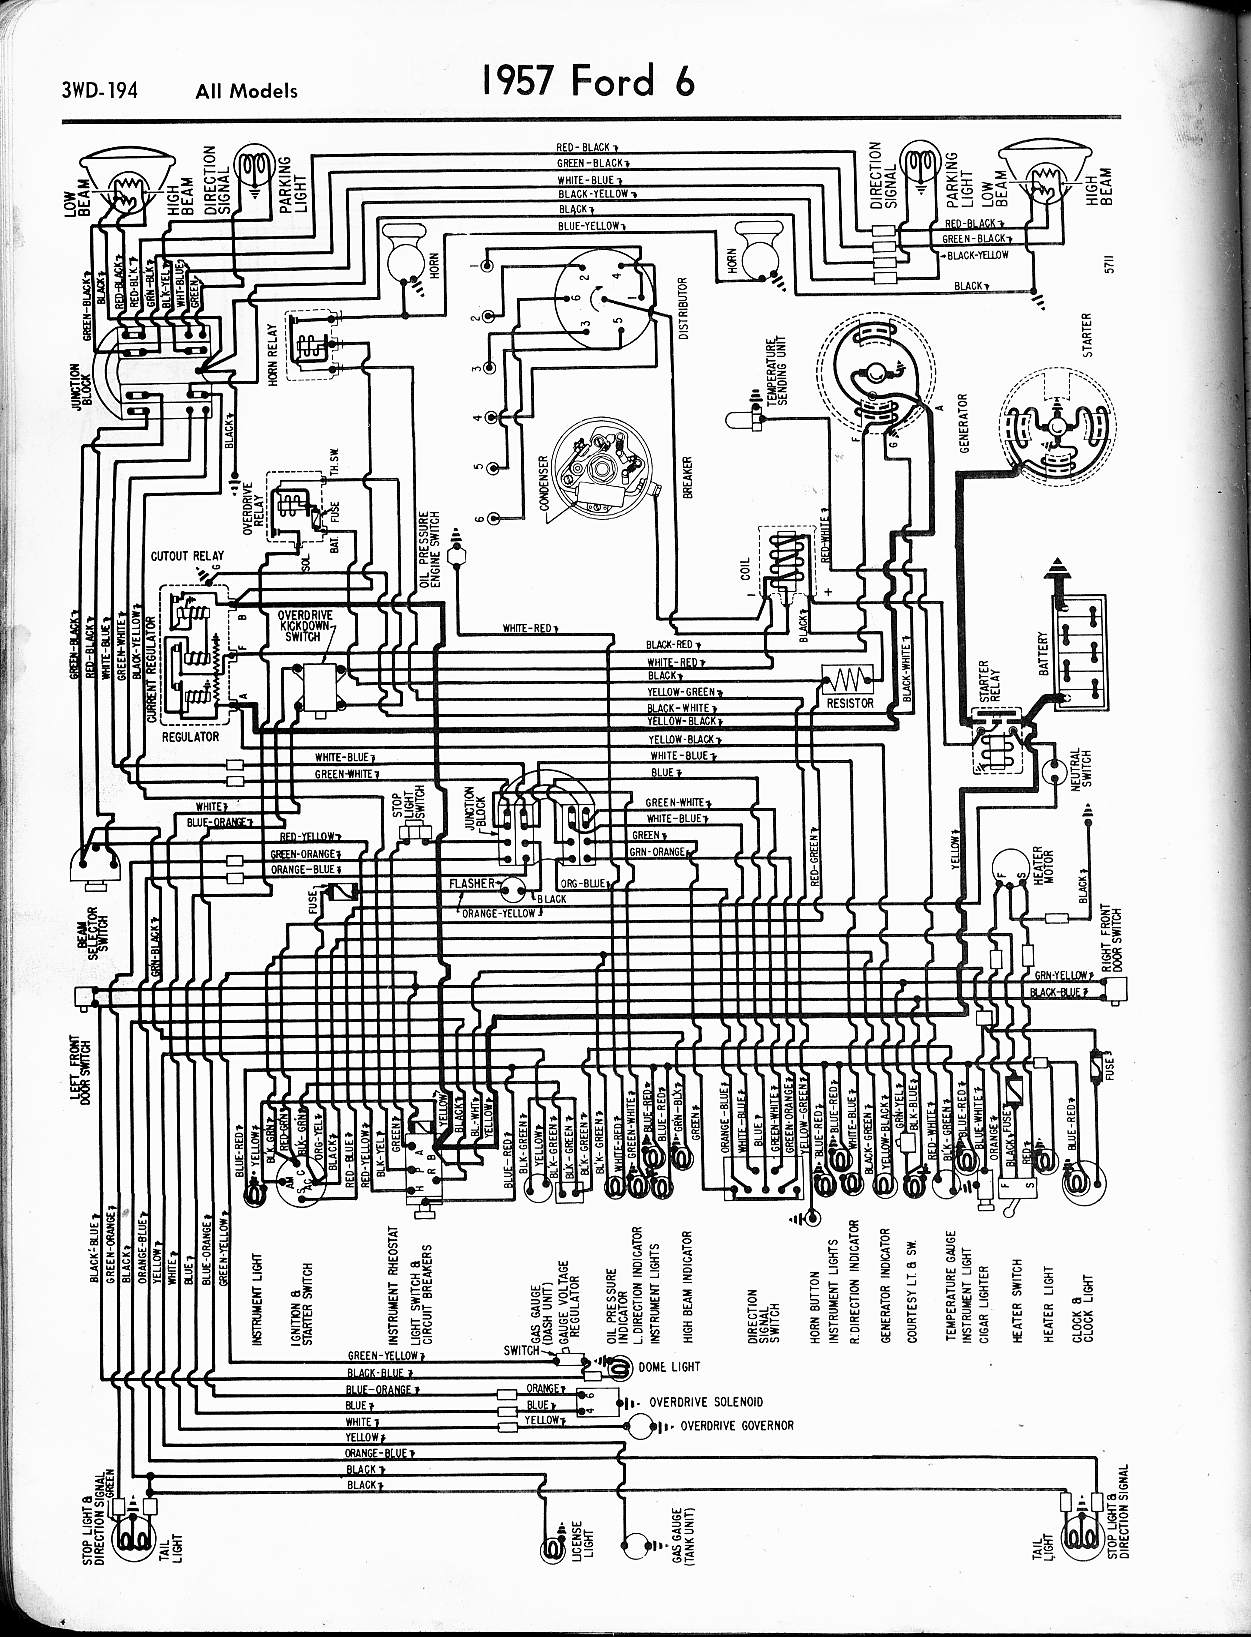 1967 Ford F750 Wiring - Data Wiring Diagram Today  Ford Wiring Diagram Parking Lamp on 67 ford alternator, 1971 ford wiring diagram, 66 ford wiring diagram, 76 ford wiring diagram, 64 ford wiring diagram, 1967 mustang parking brake diagram, 1967 ford bronco wiring diagram, 2005 ford 500 wiring diagram, 94 ford wiring diagram, 67 ford tractor, 57 ford wiring diagram, 67 ford regulator diagram, 51 ford wiring diagram, 67 ford engine, ford ignition system wiring diagram, 1967 ford f100 wiring diagram, 67 mustang wire diagram, 65 ford wiring diagram, 67 ford charging system, 67 ford speedometer,